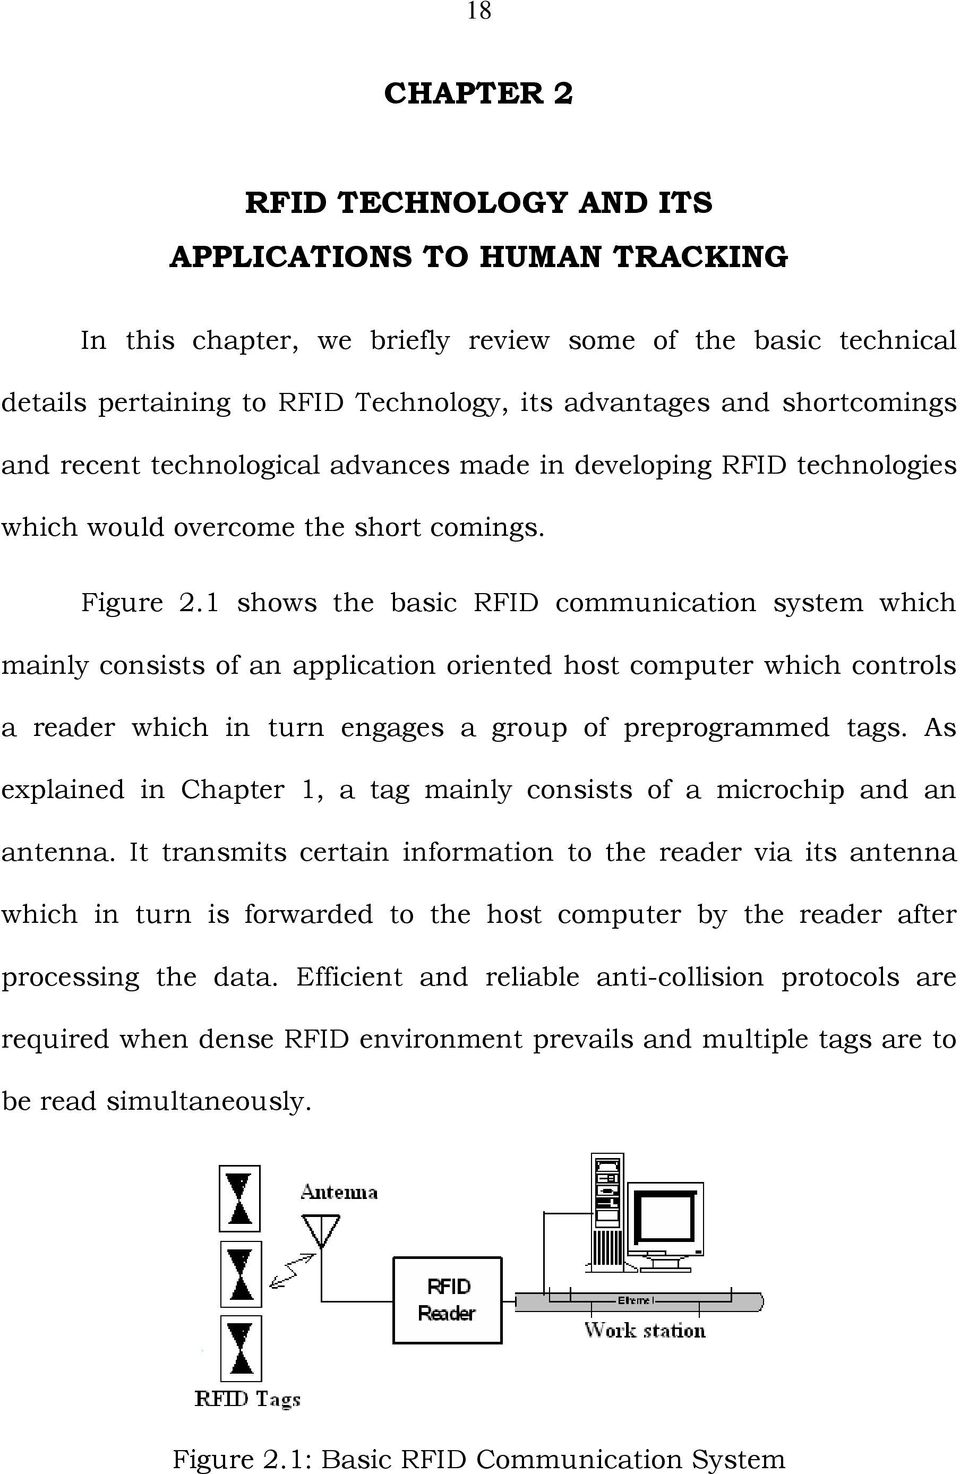 1 shows the basic RFID communication system which mainly consists of an application oriented host computer which controls a reader which in turn engages a group of preprogrammed tags.